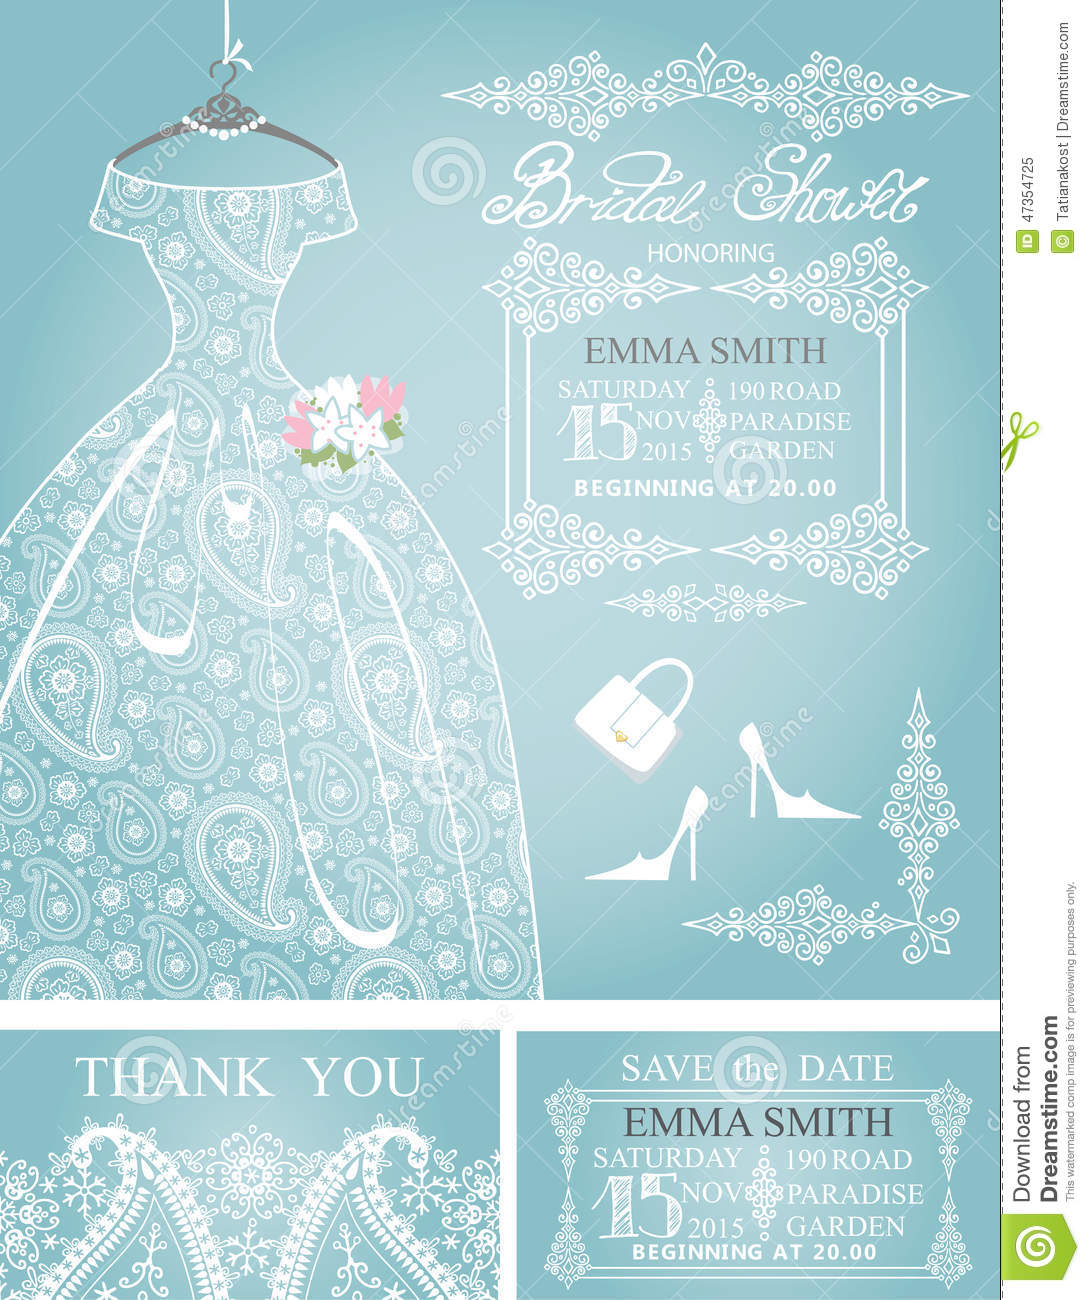 Bridal shower invitation setding paisley lace stock image download bridal shower invitation setding paisley lace stock image image of elegant filmwisefo